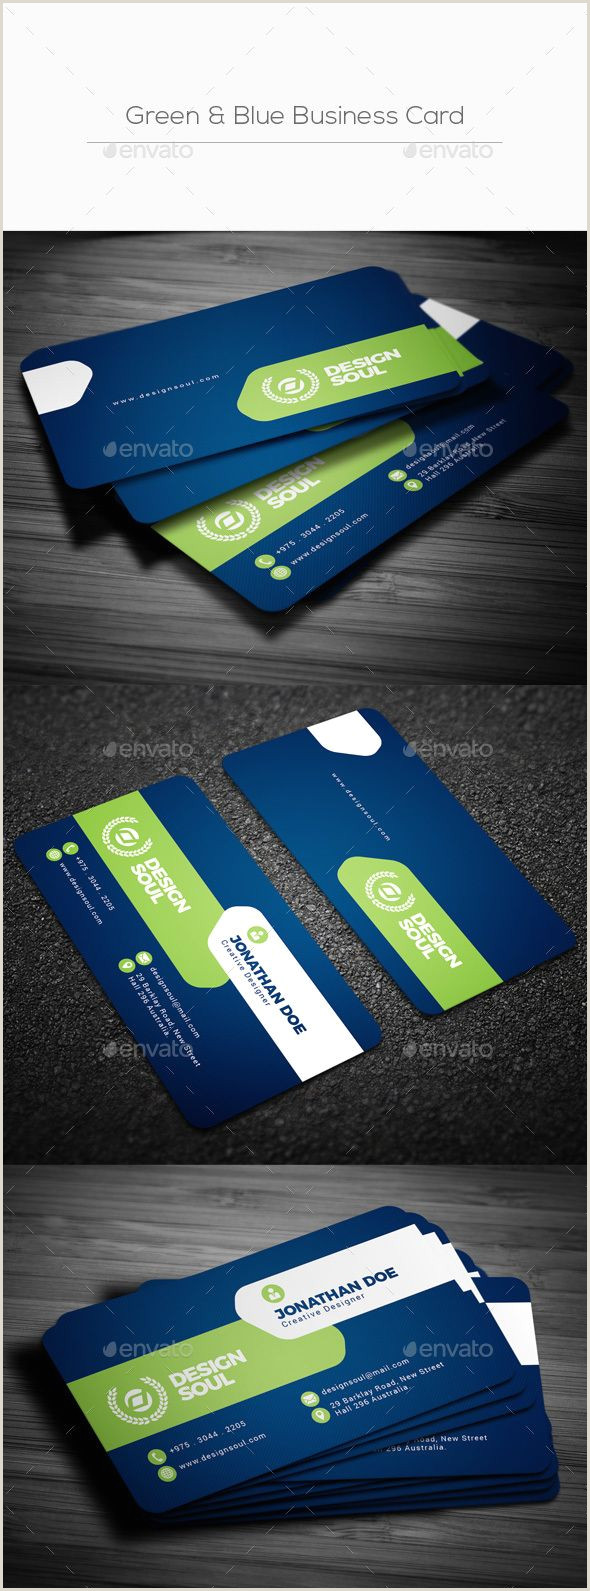 Professional Business Cards Design Green & Blue Business Card Corporate Business Cards